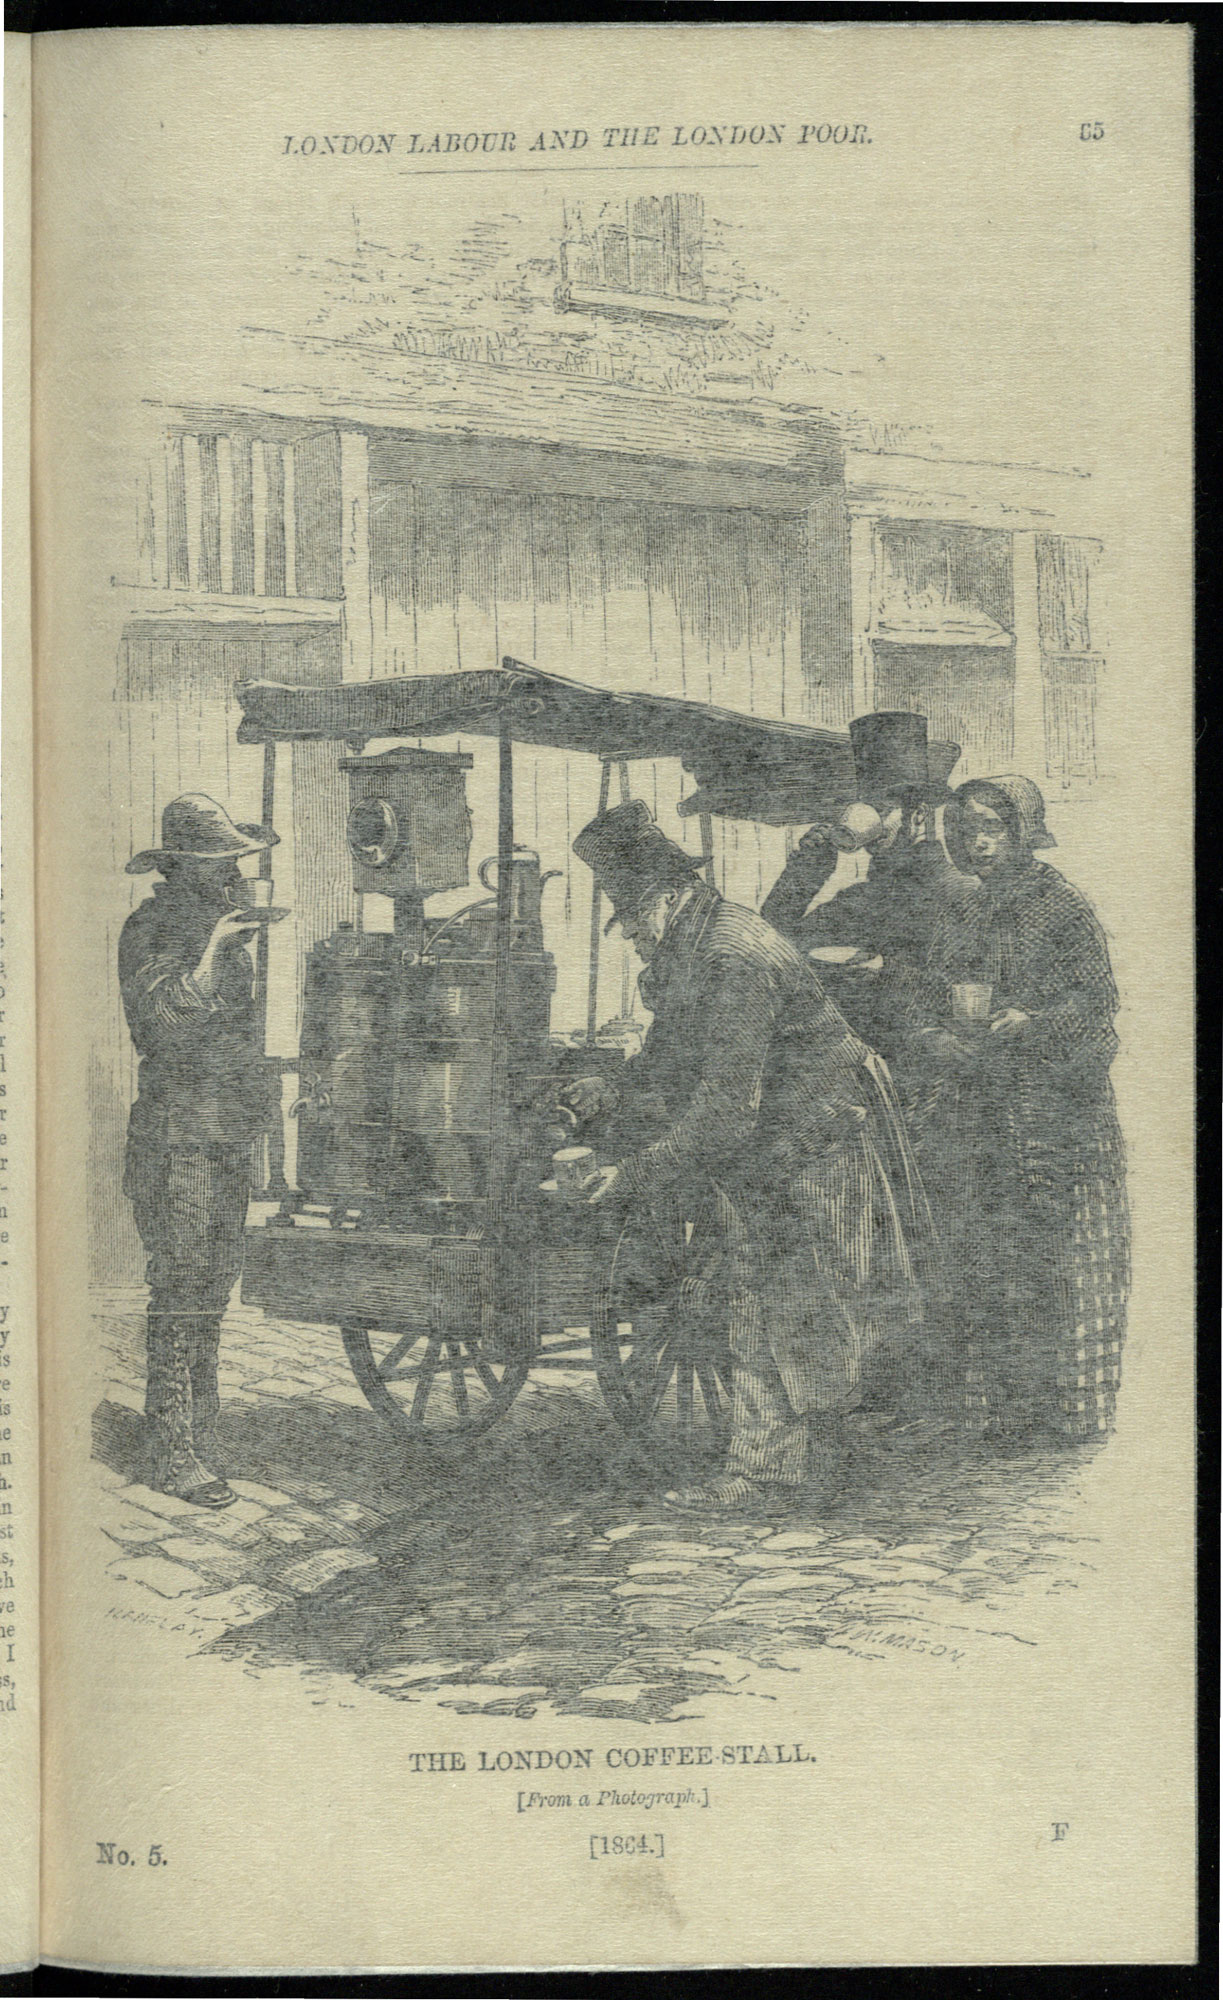 1865 edition of London Labour and the London Poor by Henry Mayhew